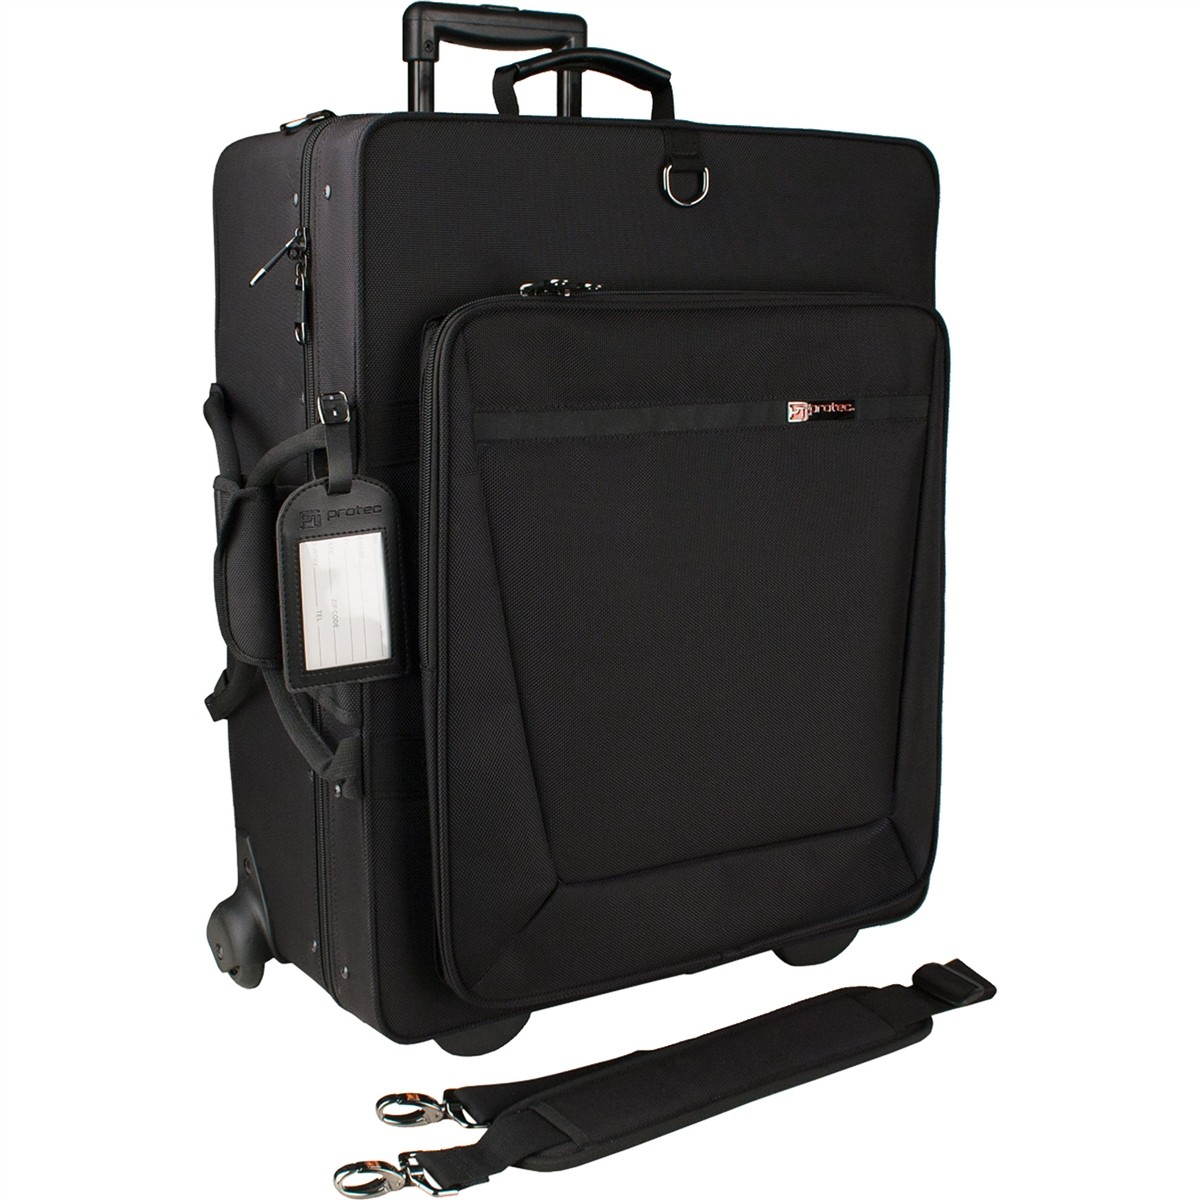 Protec Quad Horn IPAC Case with Wheels (IP301QWL)